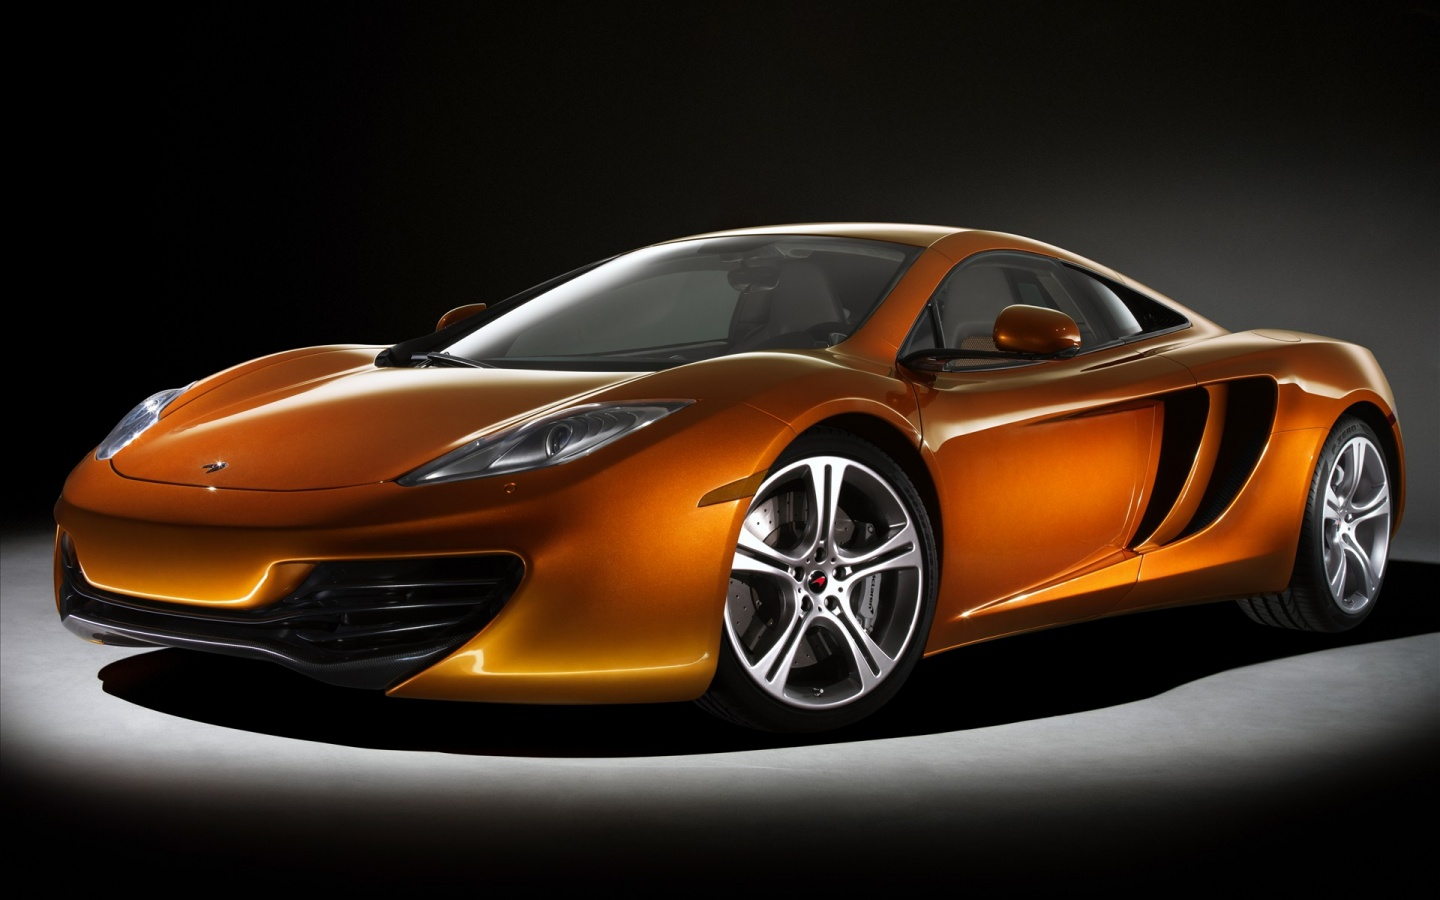 Best Wallpapers: Sports Cars Wallpapers